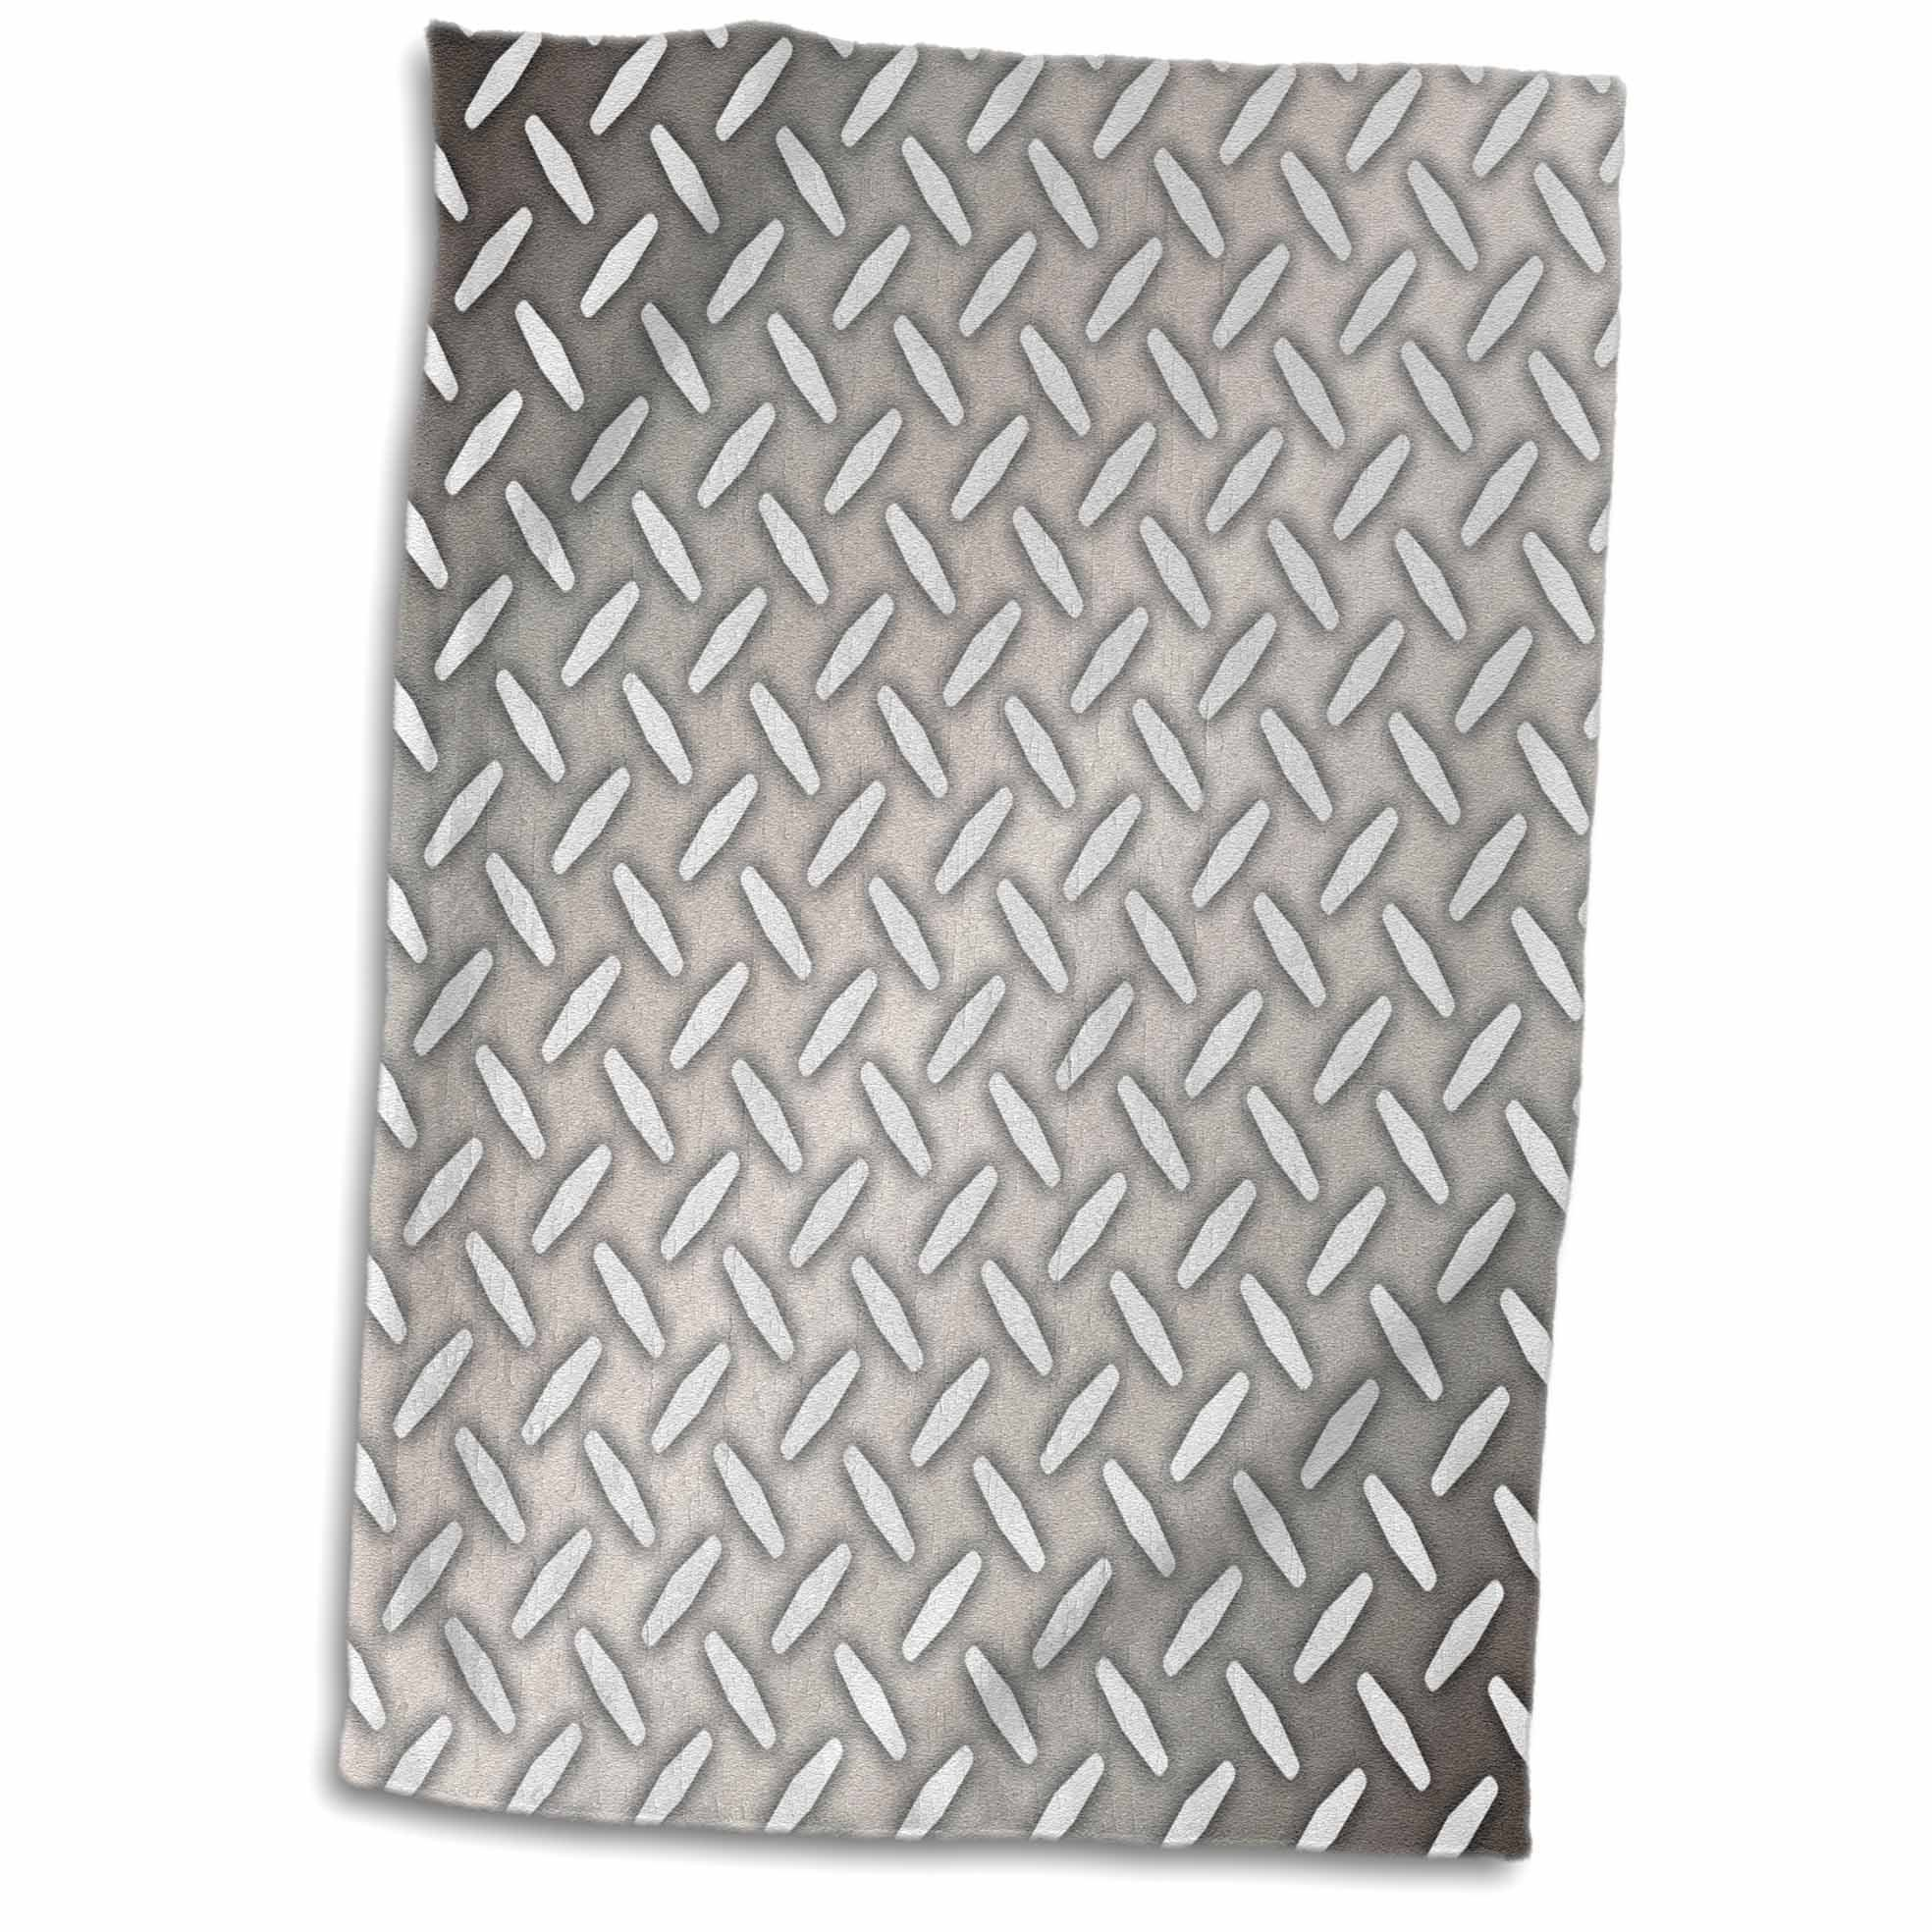 3dRose 3D Rose Gray Steel Diamond Plate Industrial Pattern Hand Towel, 15'' x 22'' by 3dRose